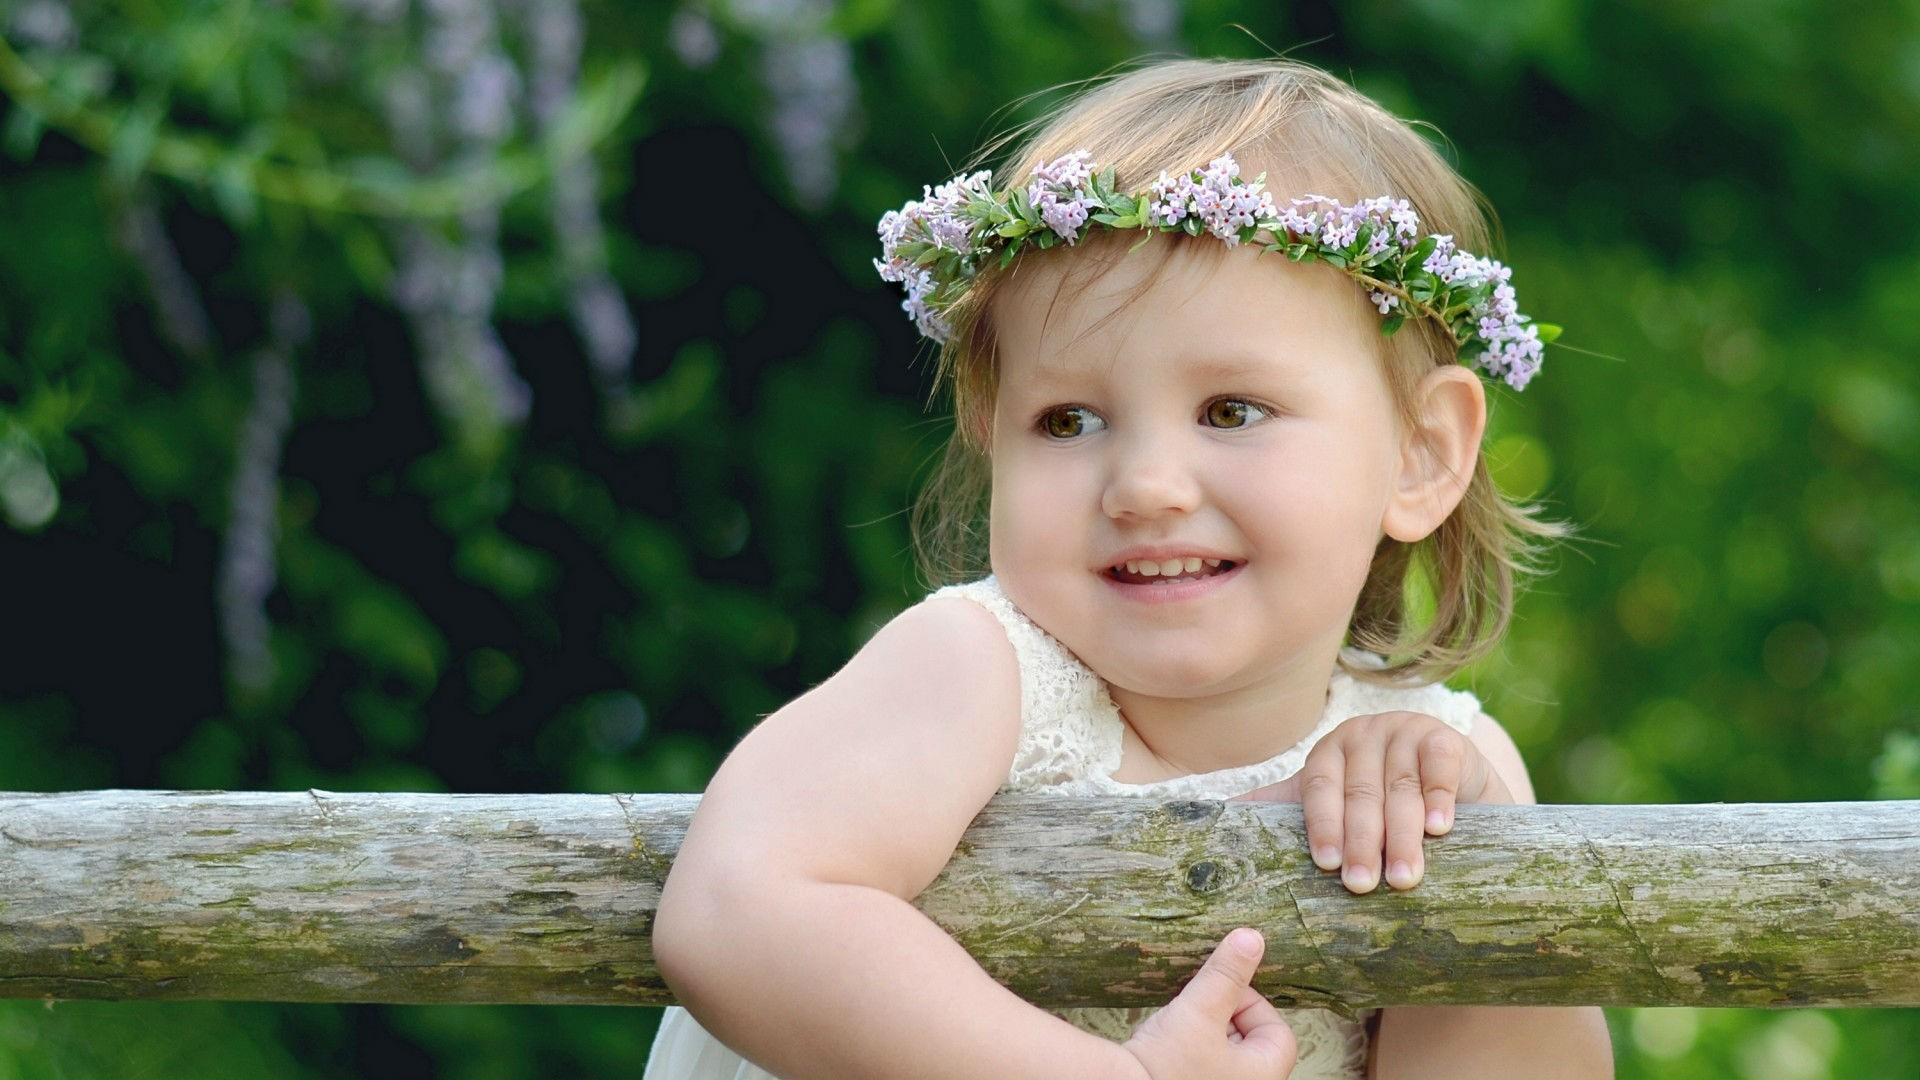 Download wallpaper 1920x1080 child girl wreath summer smile child girl wreath altavistaventures Image collections